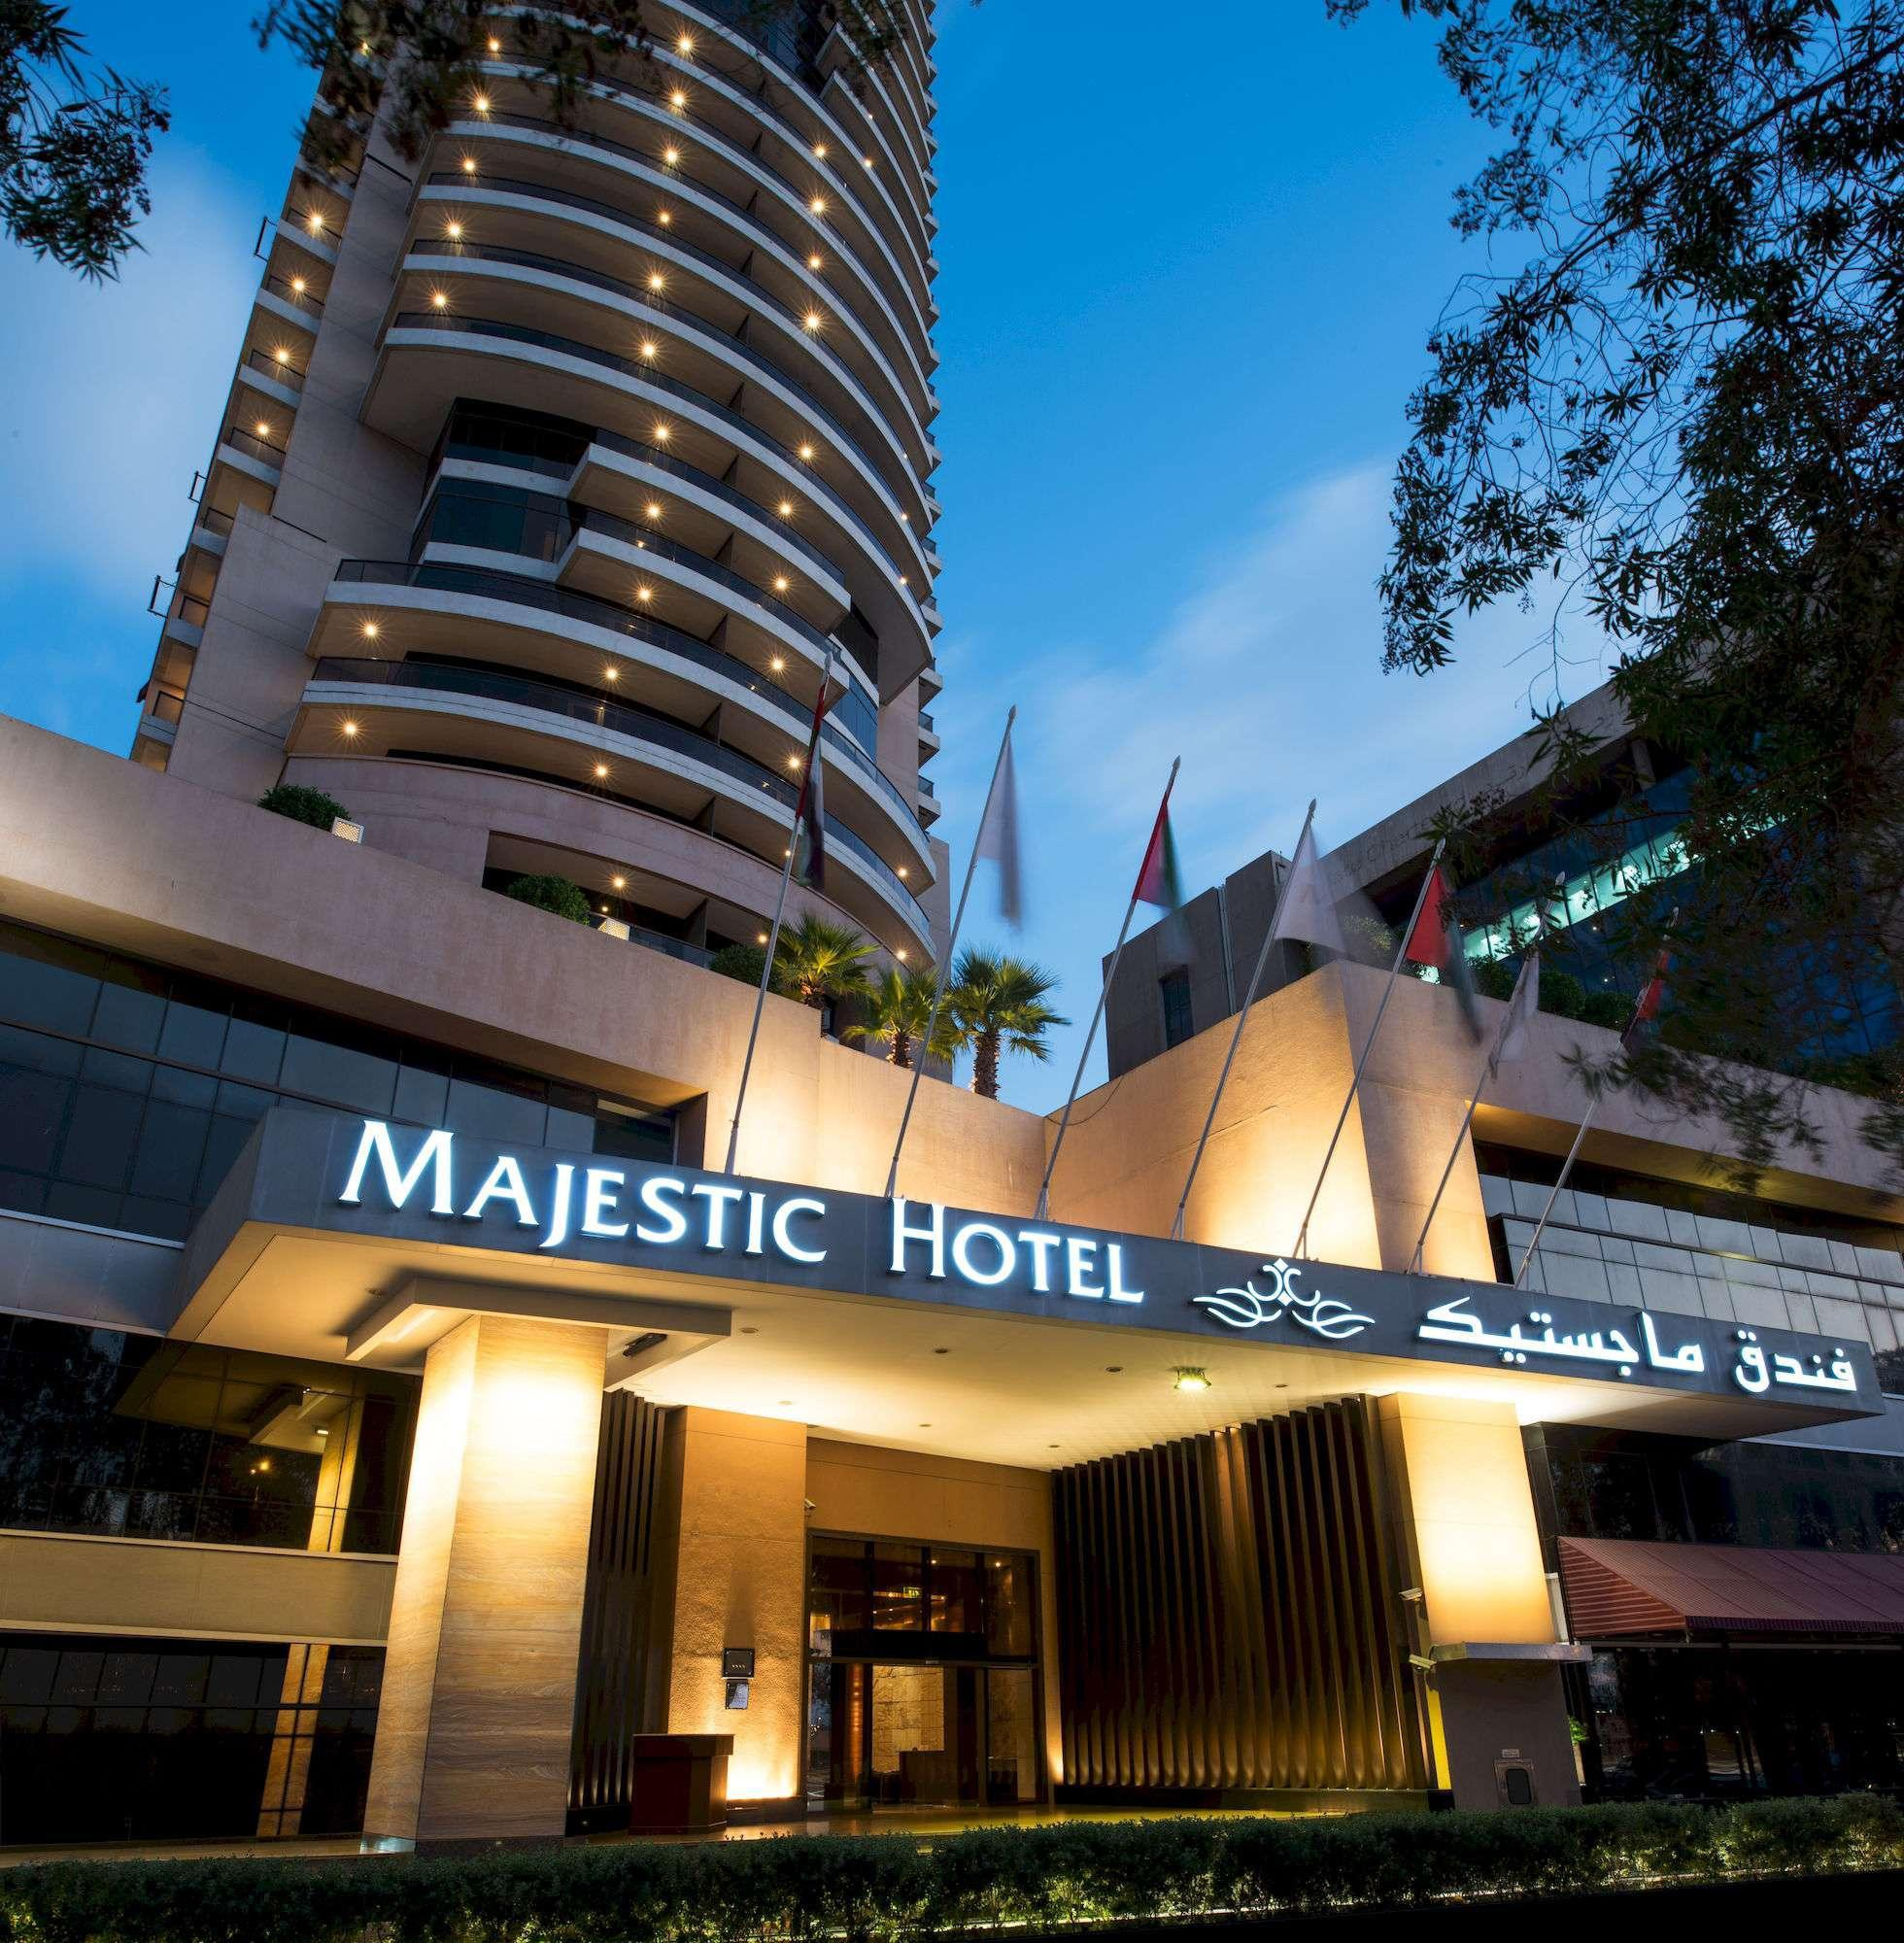 Majestic City Retreat Hotel ( Formerly Majestic Hotel Tower)